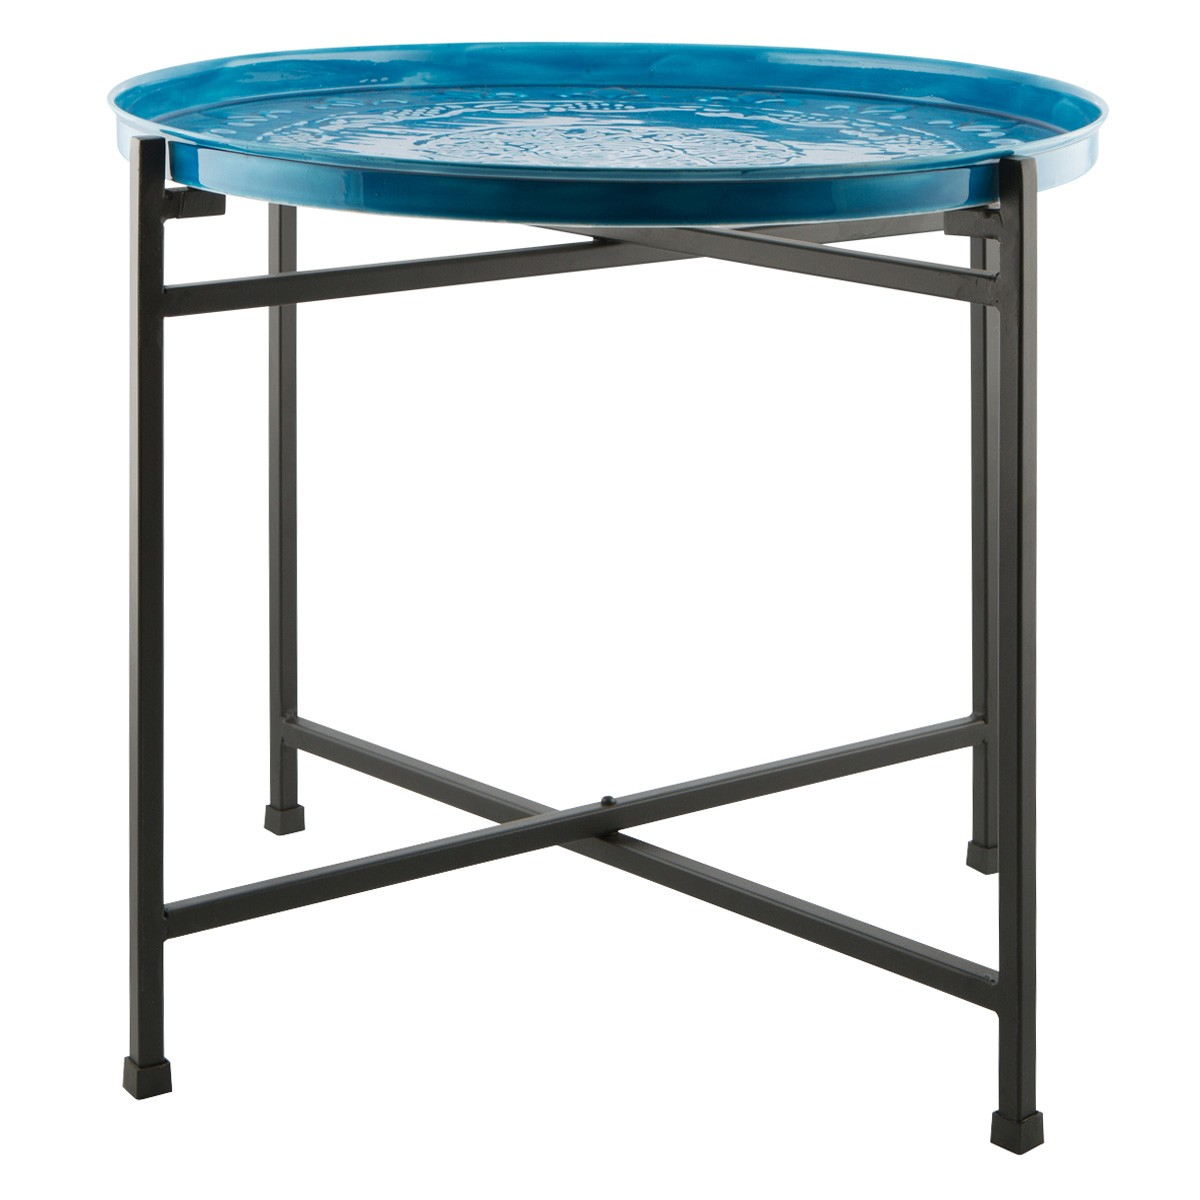 Ameson Enamelled Iron Tray Top Round Side Table, Small, Blue